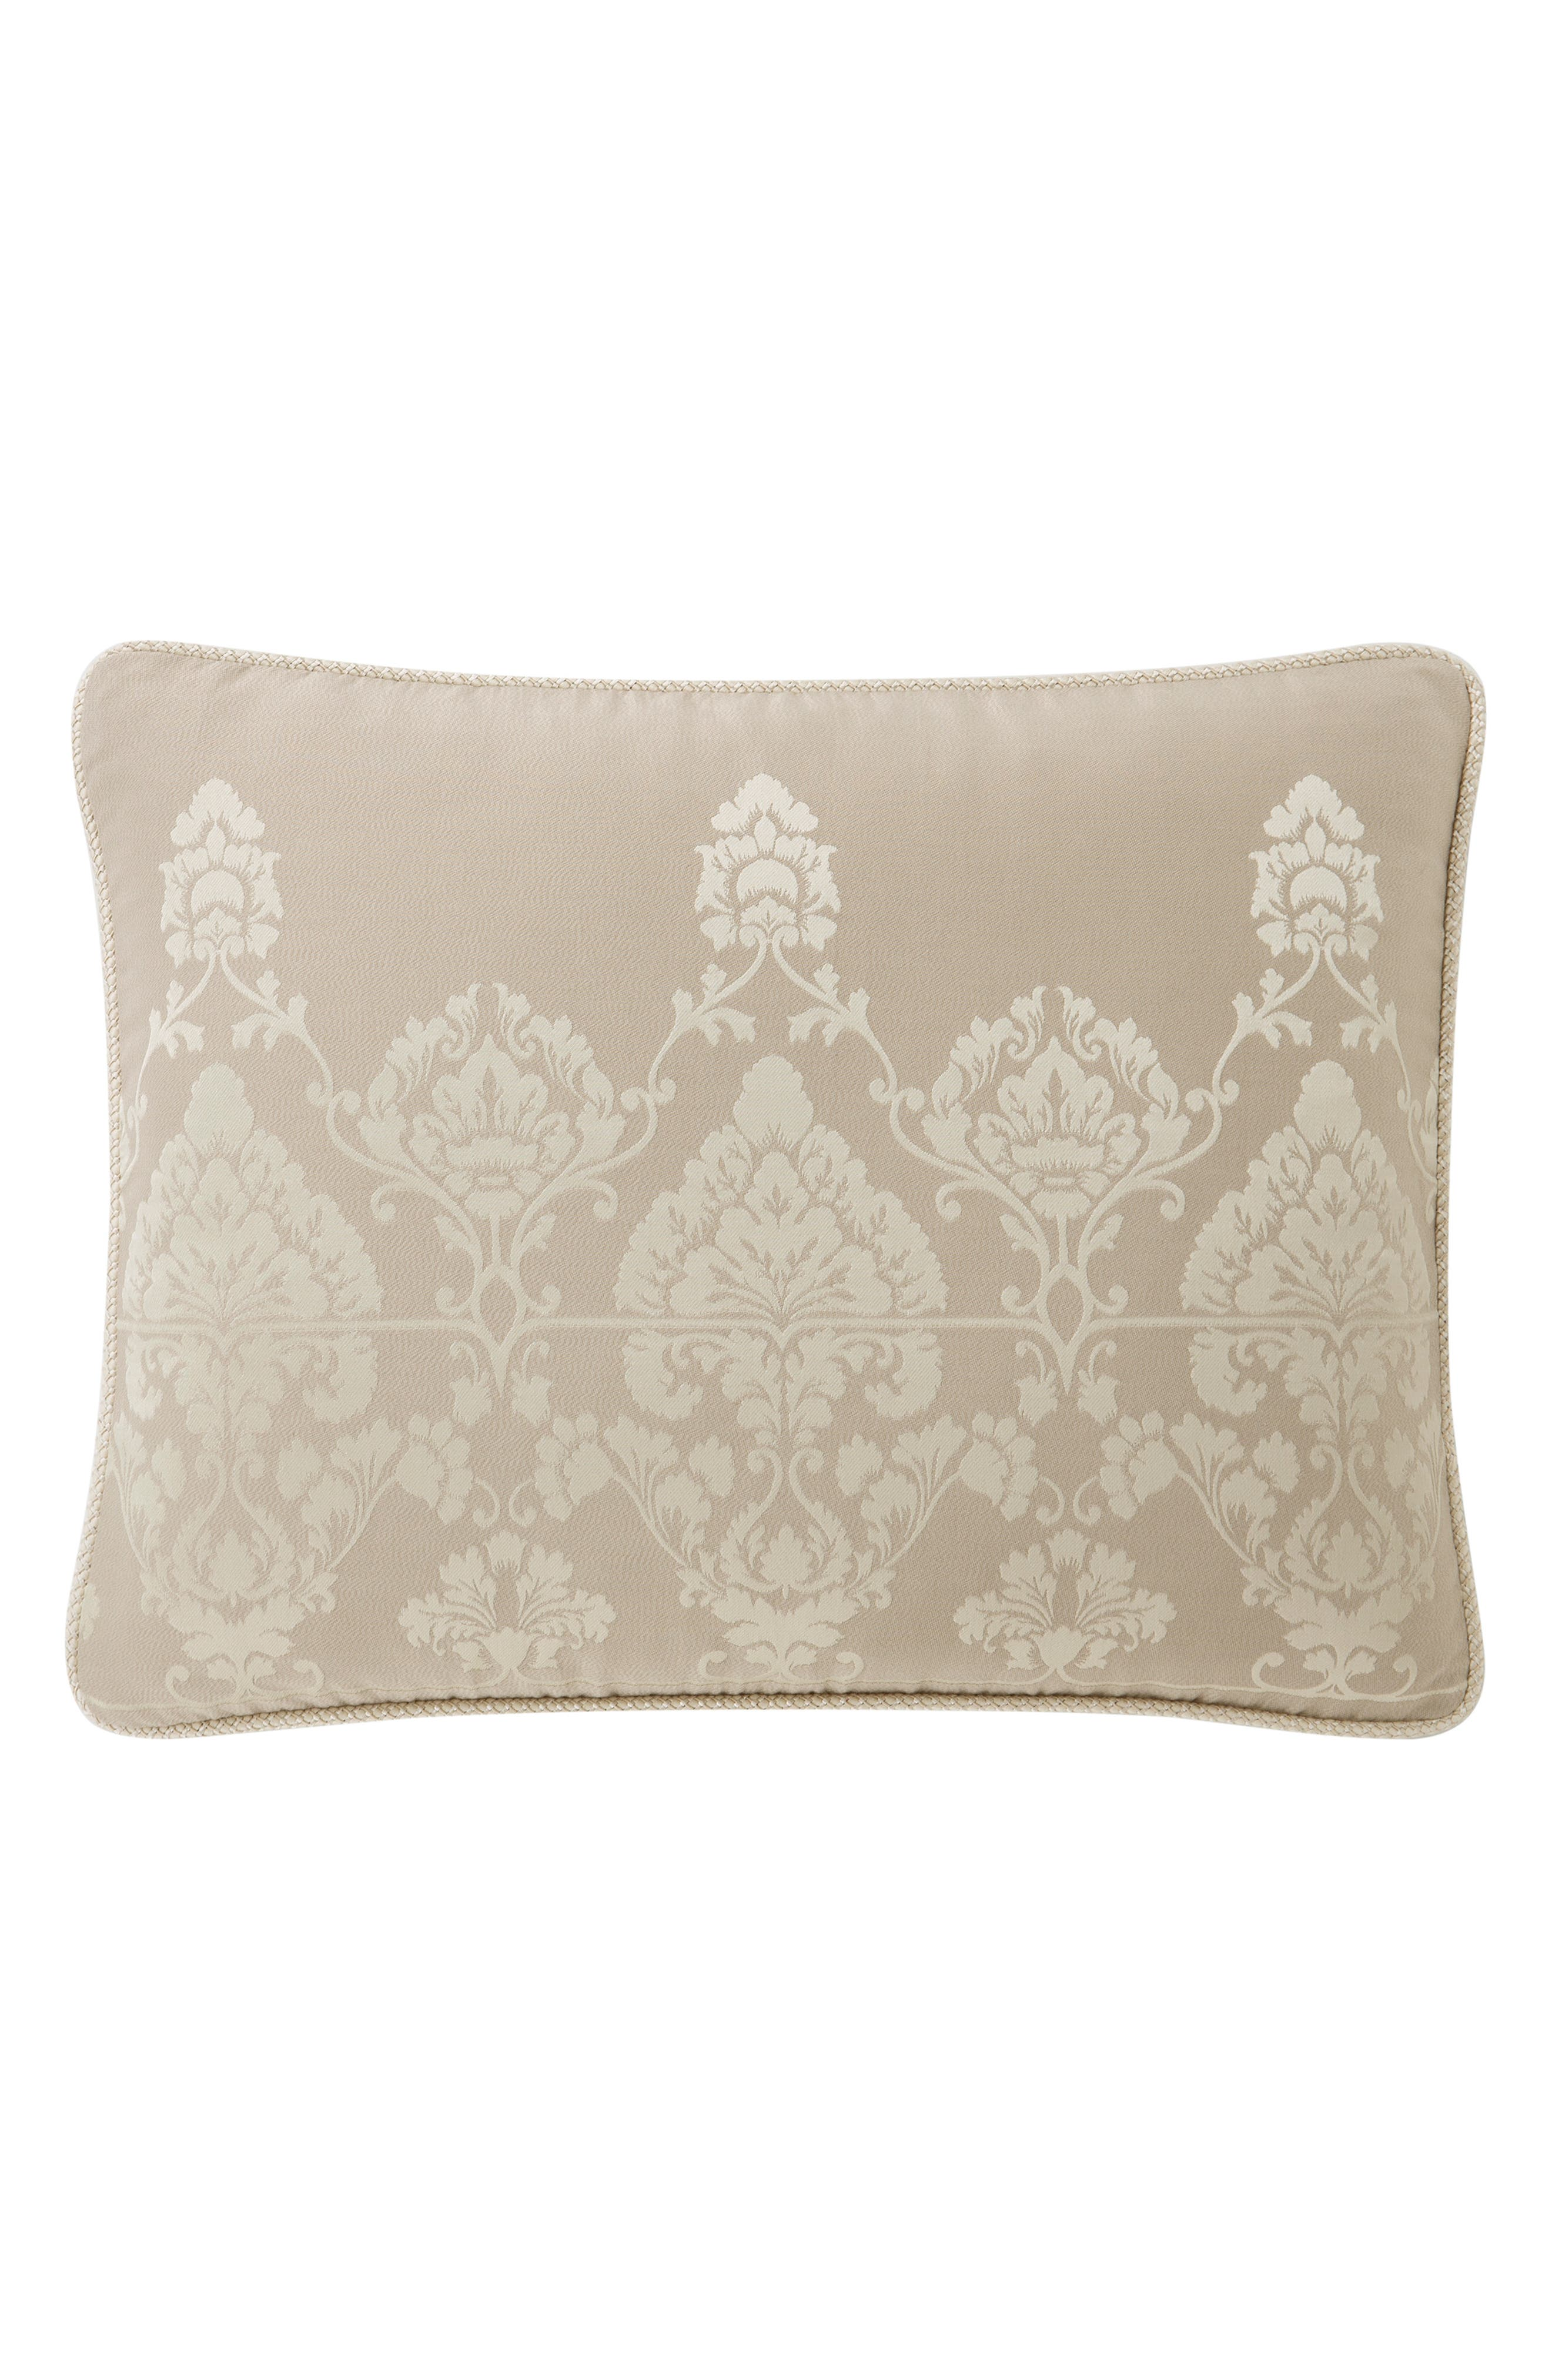 WATERFORD,                             Abrielle Reversible Comforter, Sham & Bed Skirt Set,                             Alternate thumbnail 4, color,                             CHAMPAGNE